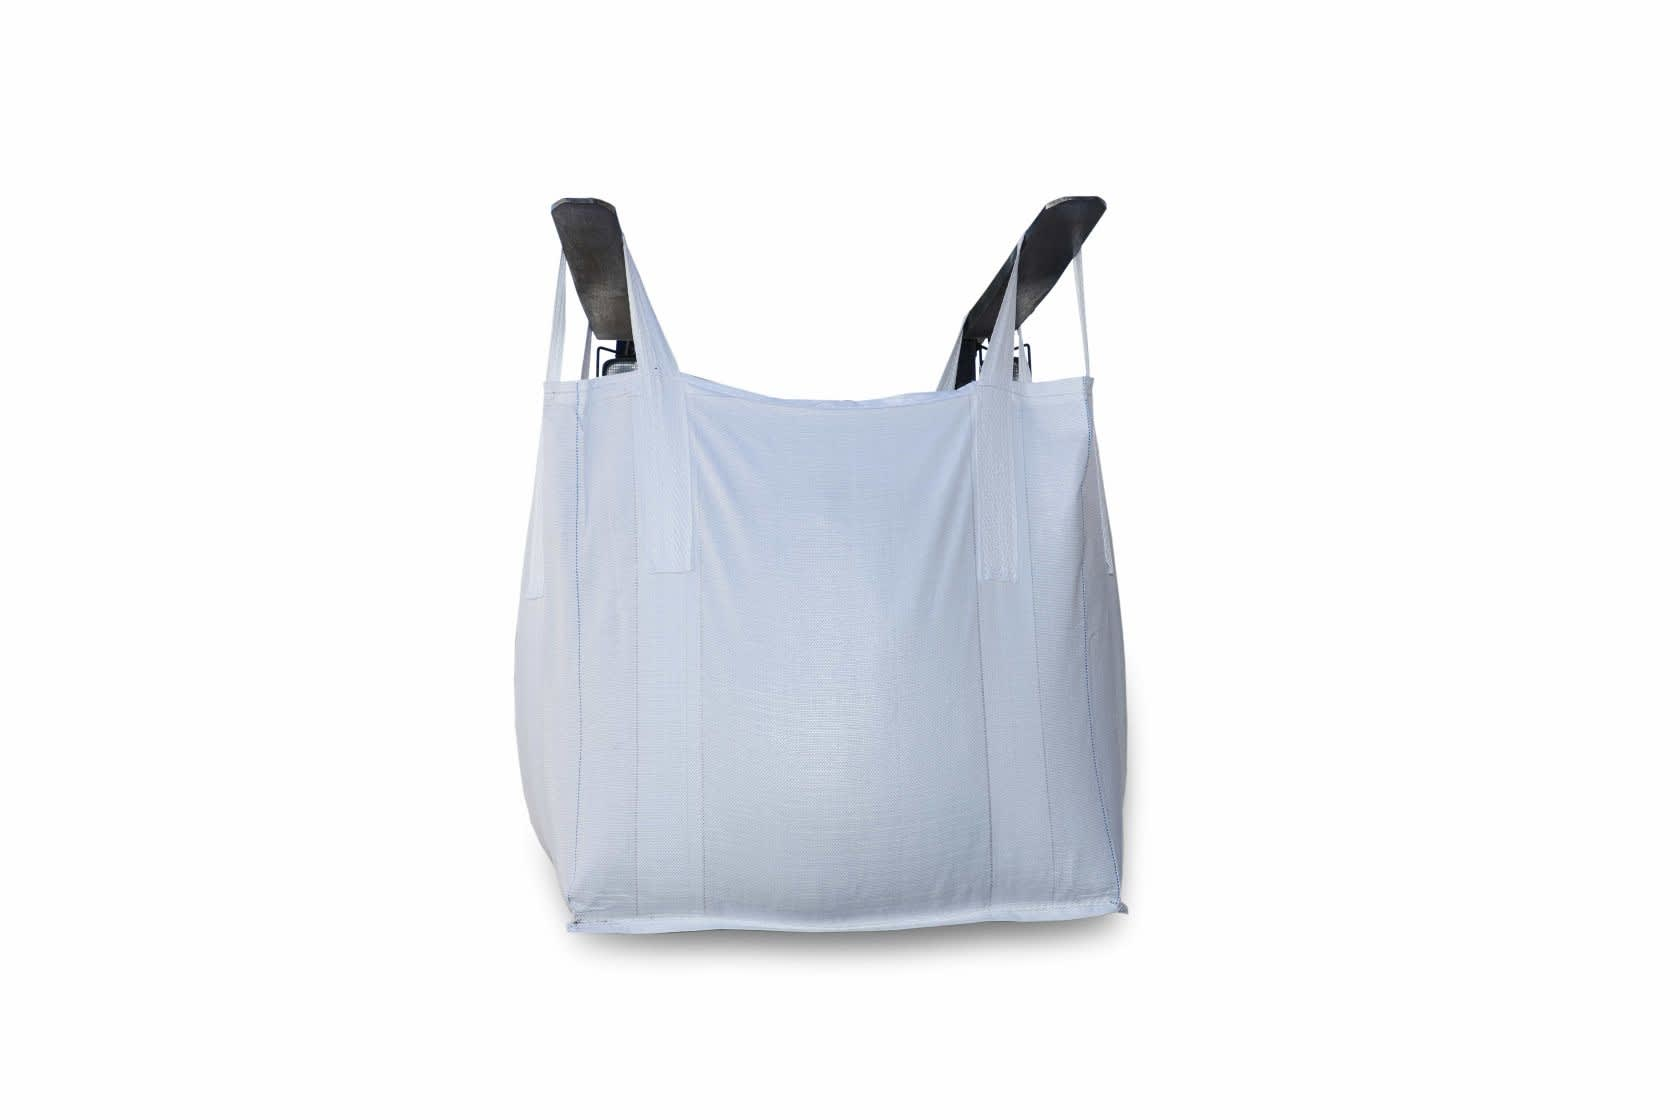 Open Top Closed Bottom Bulk Bags or Bulka Bags